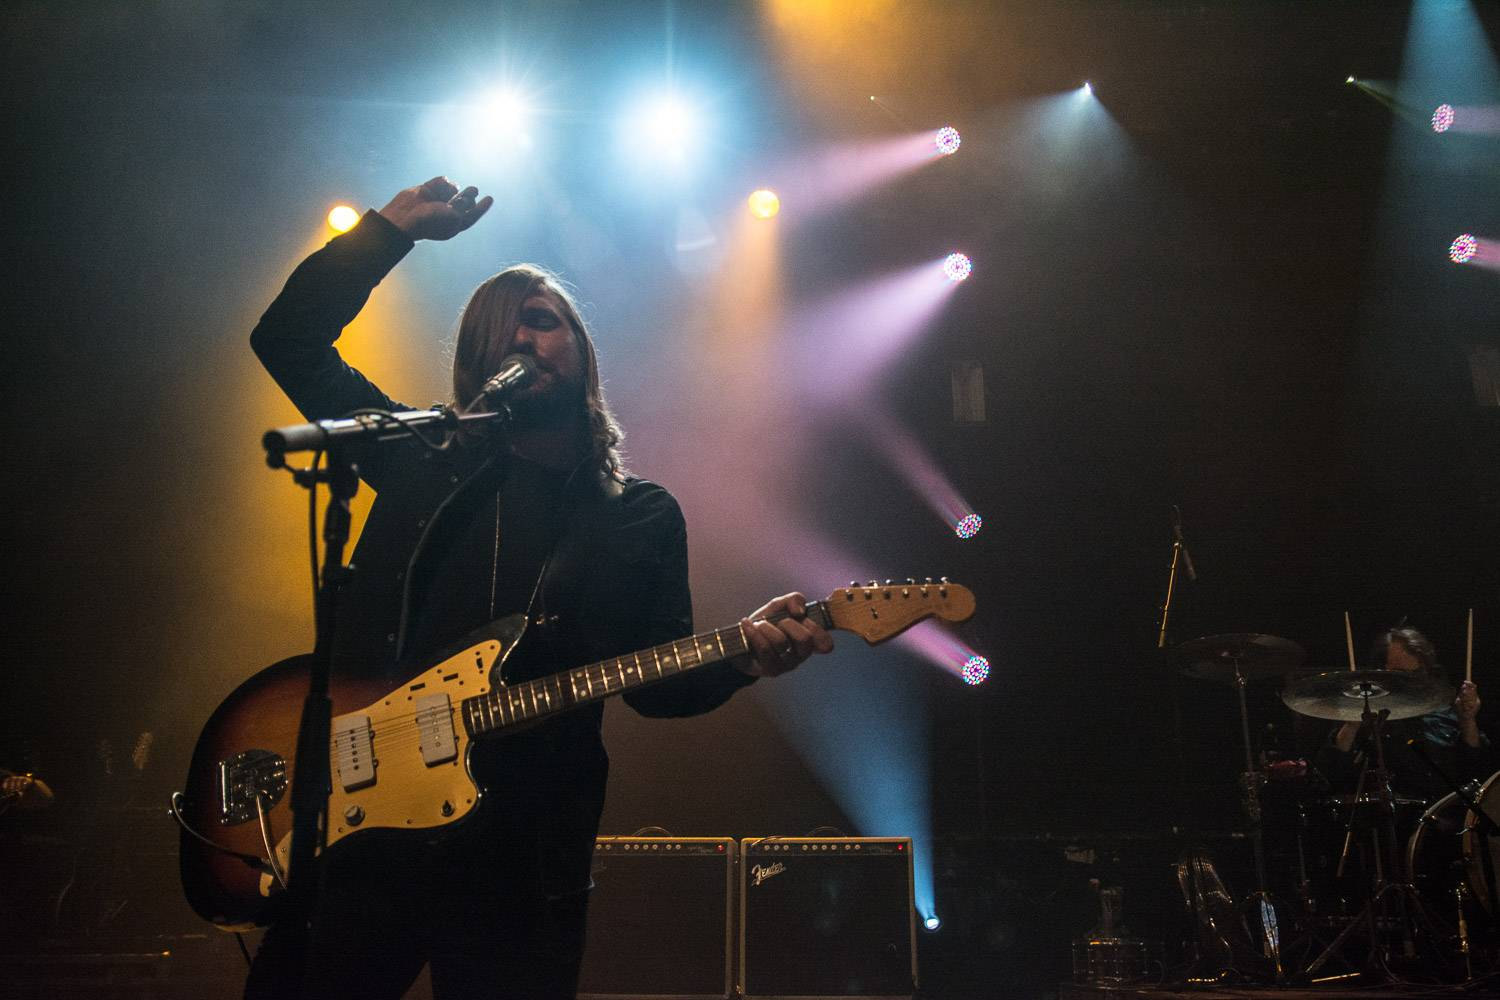 Band Of Skulls at the Vogue Theatre, Vancouver, Sept 16 2016. Pavel Boiko photo.